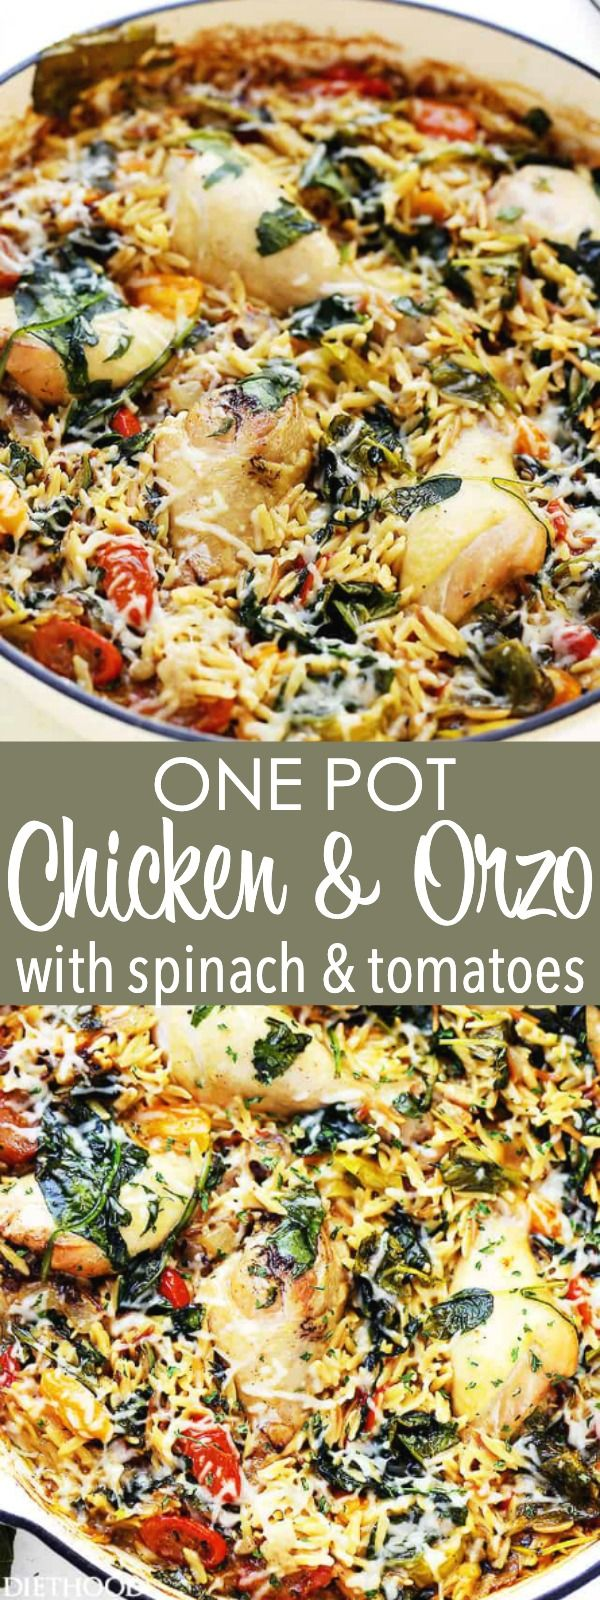 One Pot Chicken and Orzo with Spinach and Tomatoes - Chicken, tomatoes, and veggies cooked together with orzo pasta for a complete dinner made in just ONE skillet.  Loaded with flavors and texture, this is a super delicious and very easy one pot meal that everyone will love! #easyonepotmeals